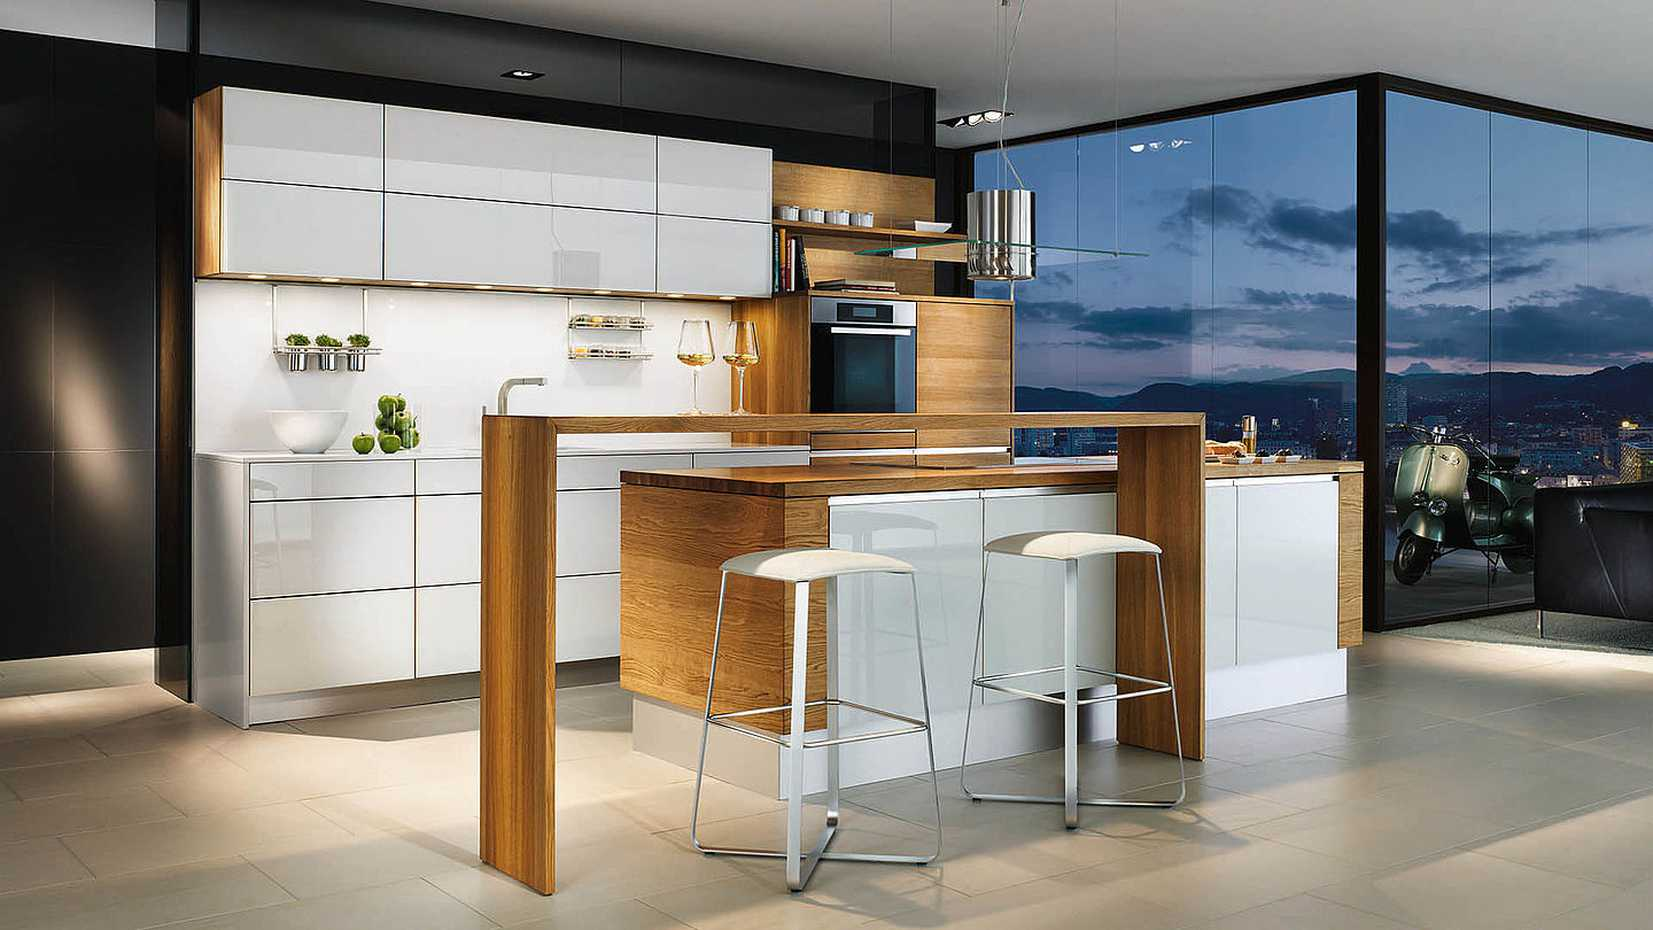 Linee Kitchen by Team 7 product image 2